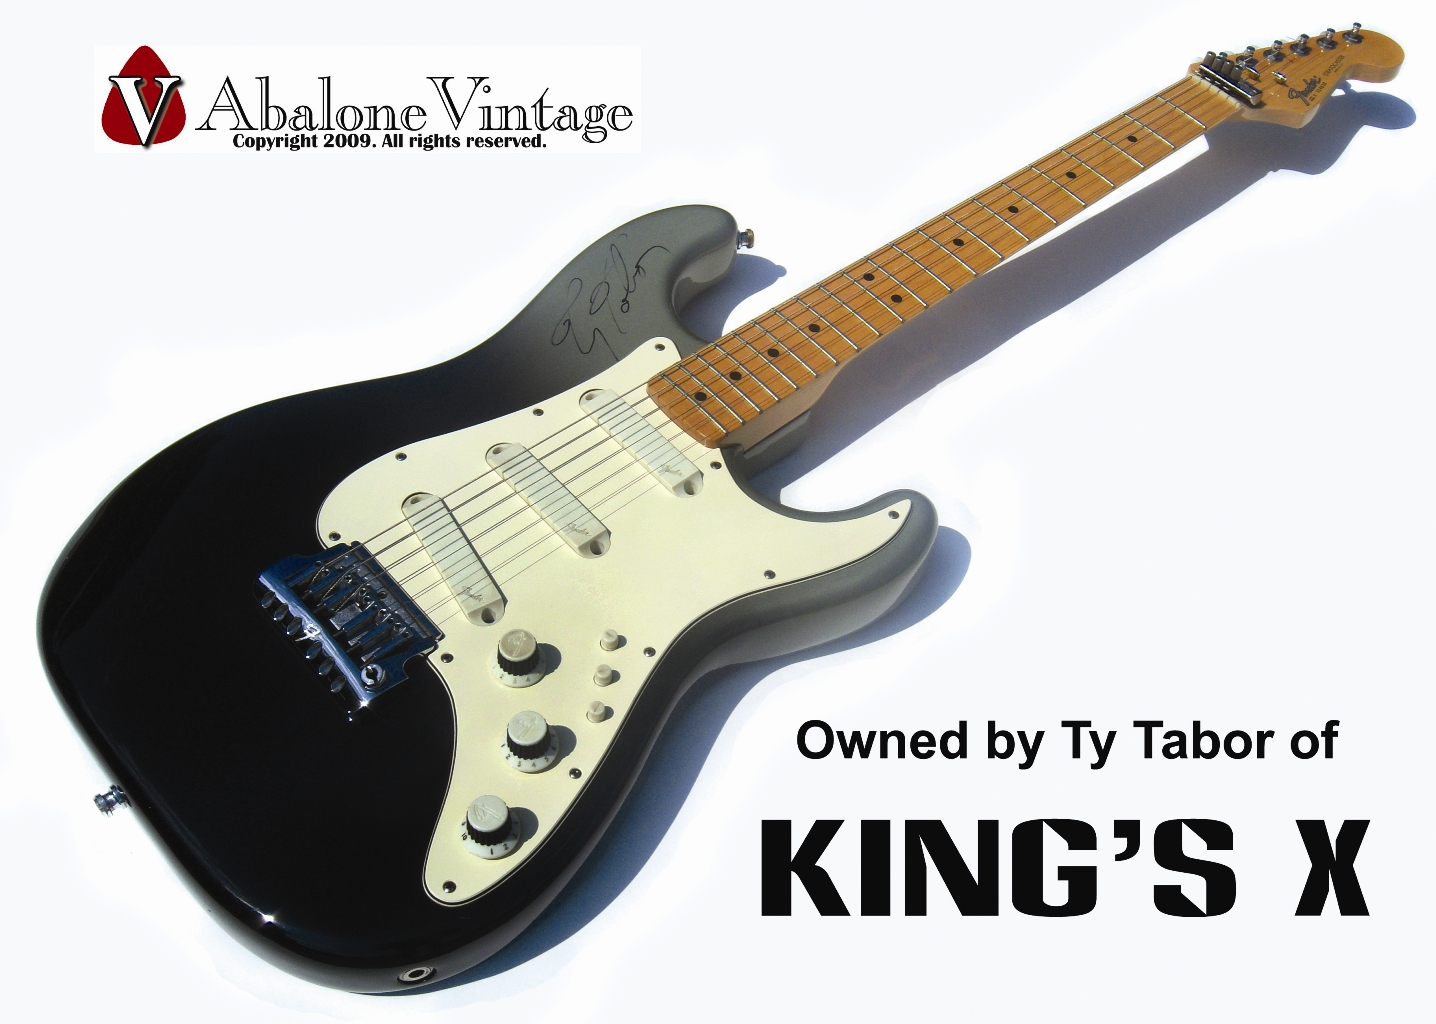 ty tabor kings x king 39 s x fender stratocaster elite zion ty tabor signature guitar bab series l5 amp. Black Bedroom Furniture Sets. Home Design Ideas